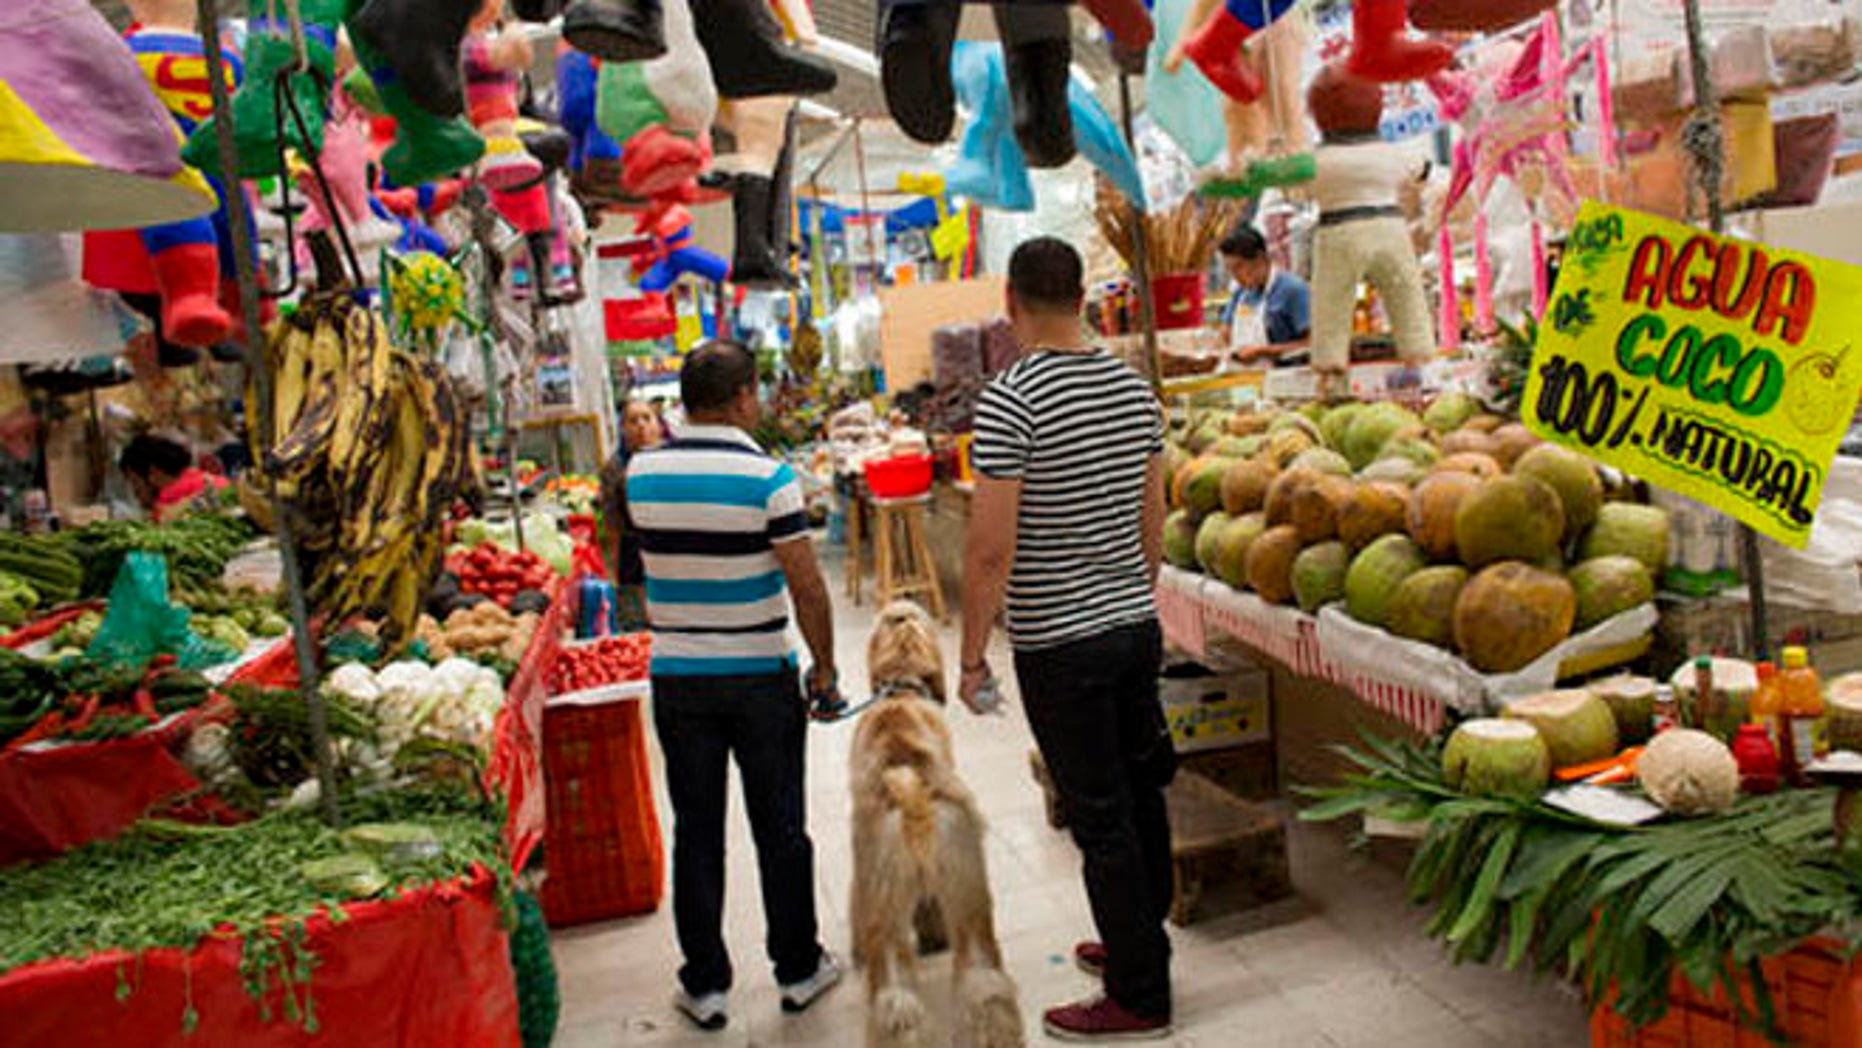 """Men shop along with their dog inside Mercado Medellin in Mexico City, Friday, May 20, 2016. Mexico is lowering its economic growth forecast for 2016, citing what it calls """"adverse"""" international conditions including sluggish industrial production in the United States. (AP Photo/Rebecca Blackwell)"""